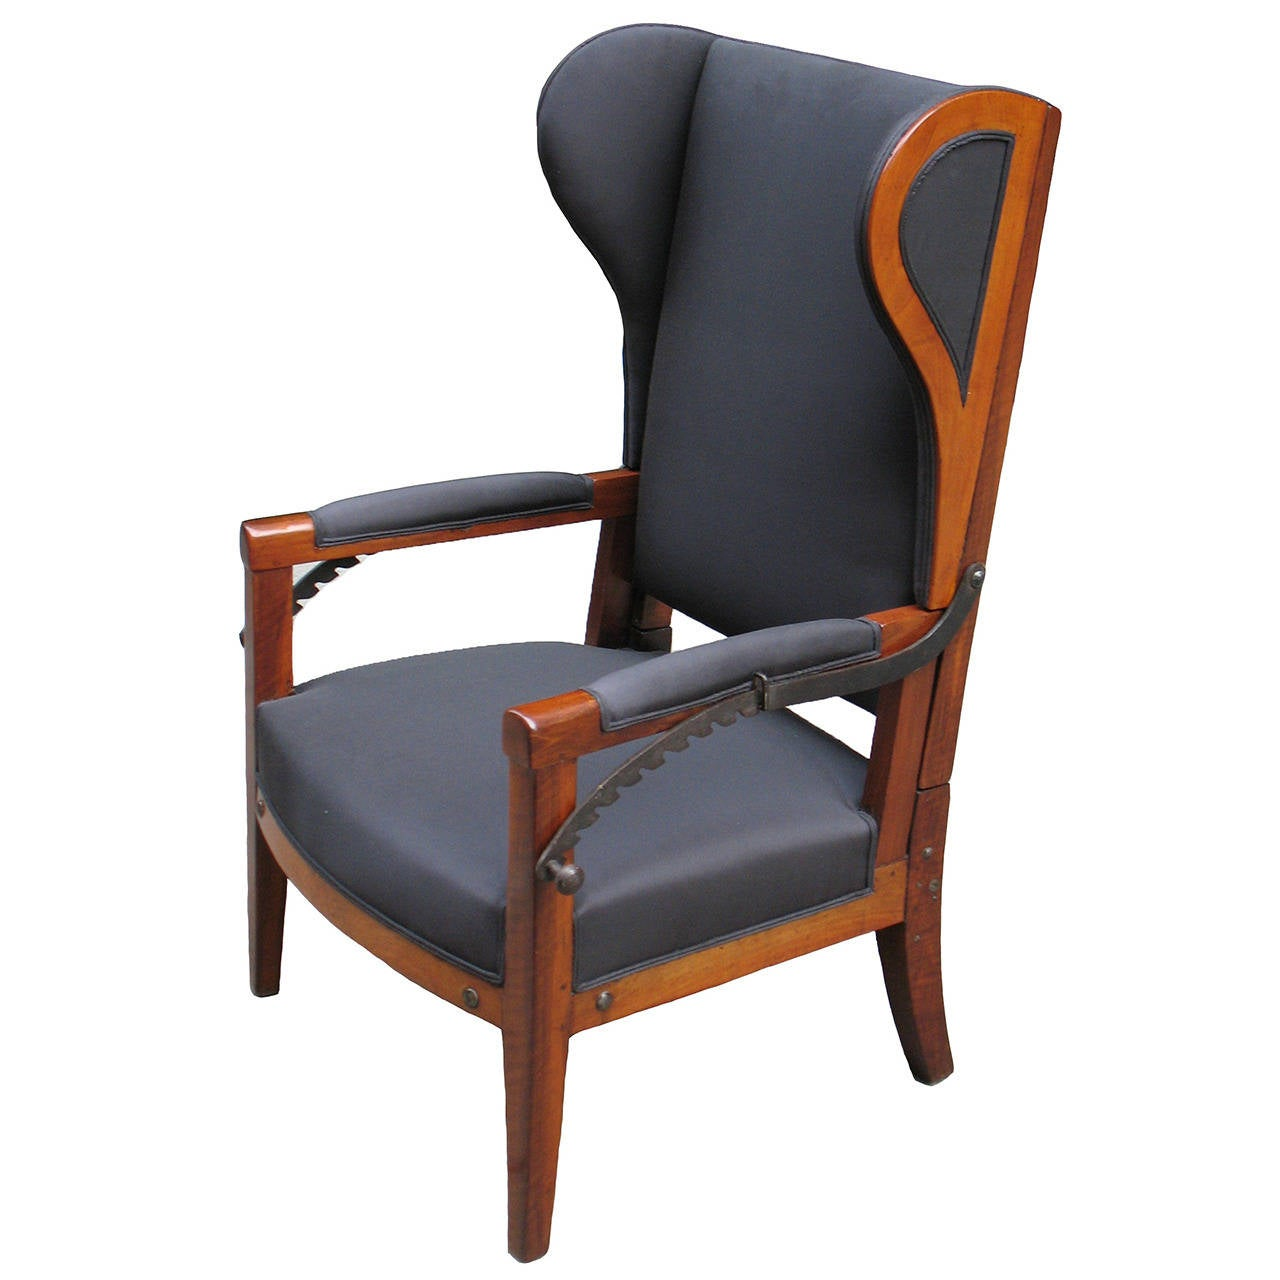 1960s Missoni Wingback Chair At 1stdibs: Very Special Biedermeier Reclining Wing Chair For Sale At